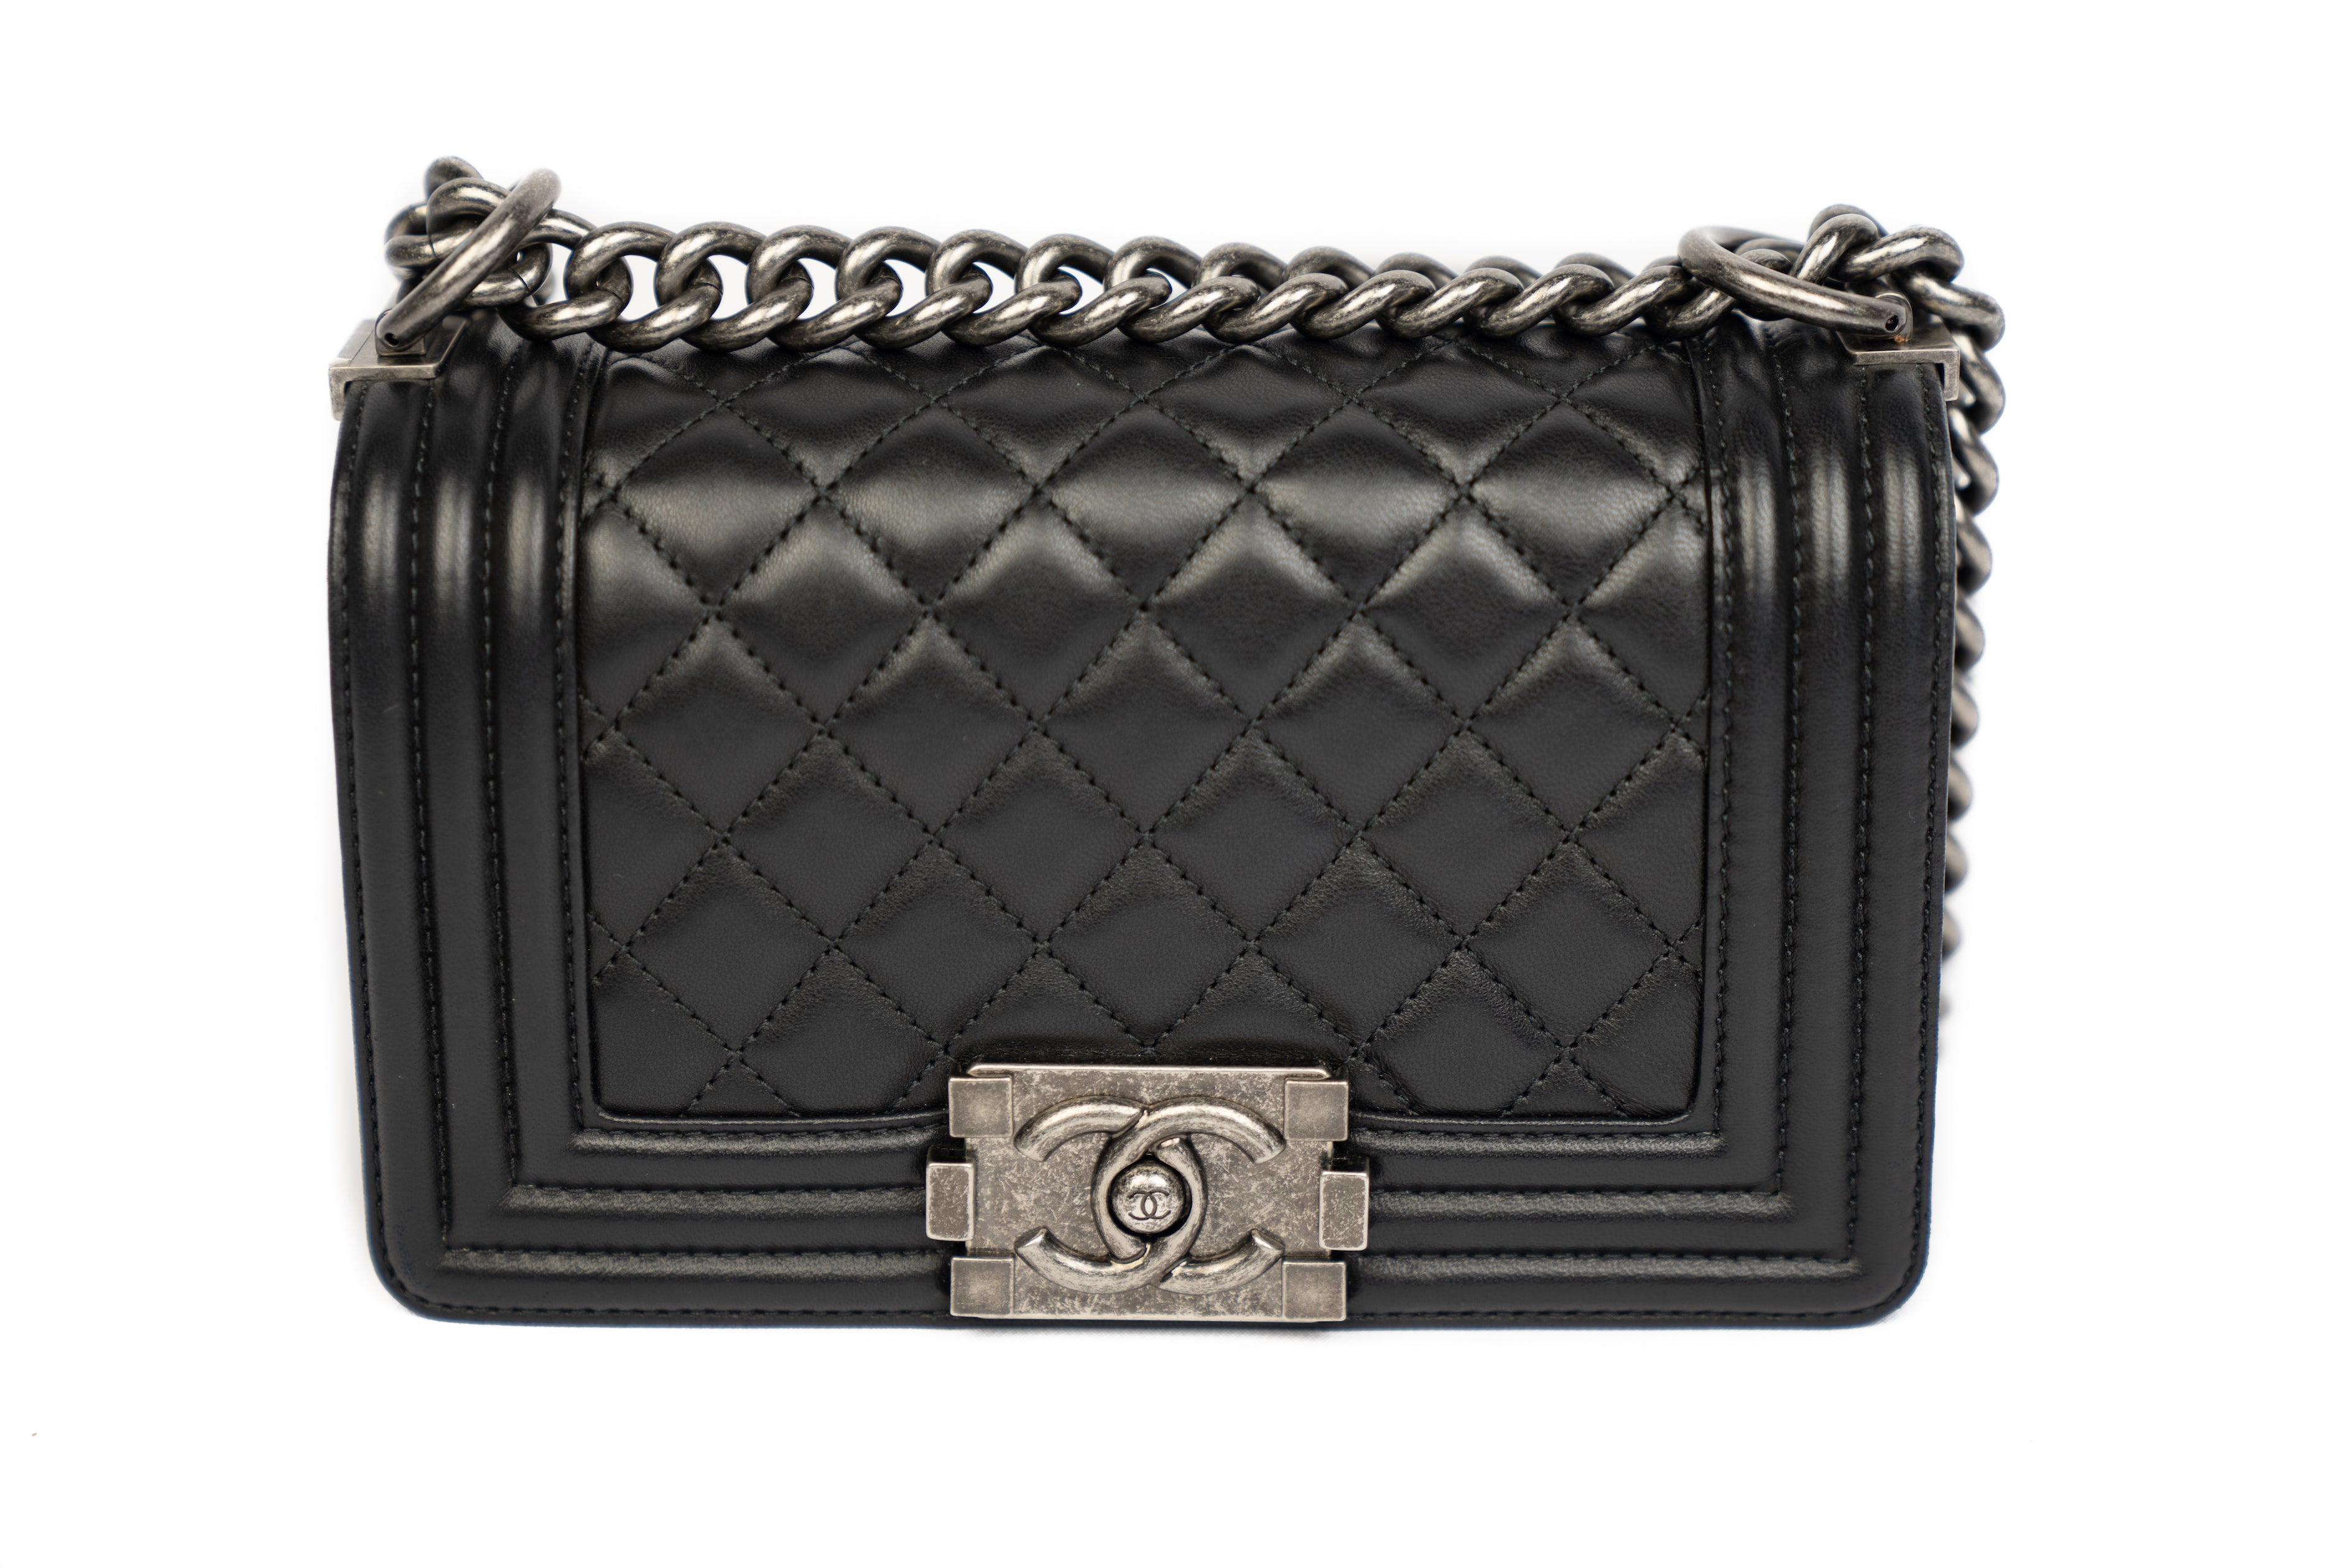 818bcfeb749f Chanel Small Boy Bag – Simply Chic Consignment